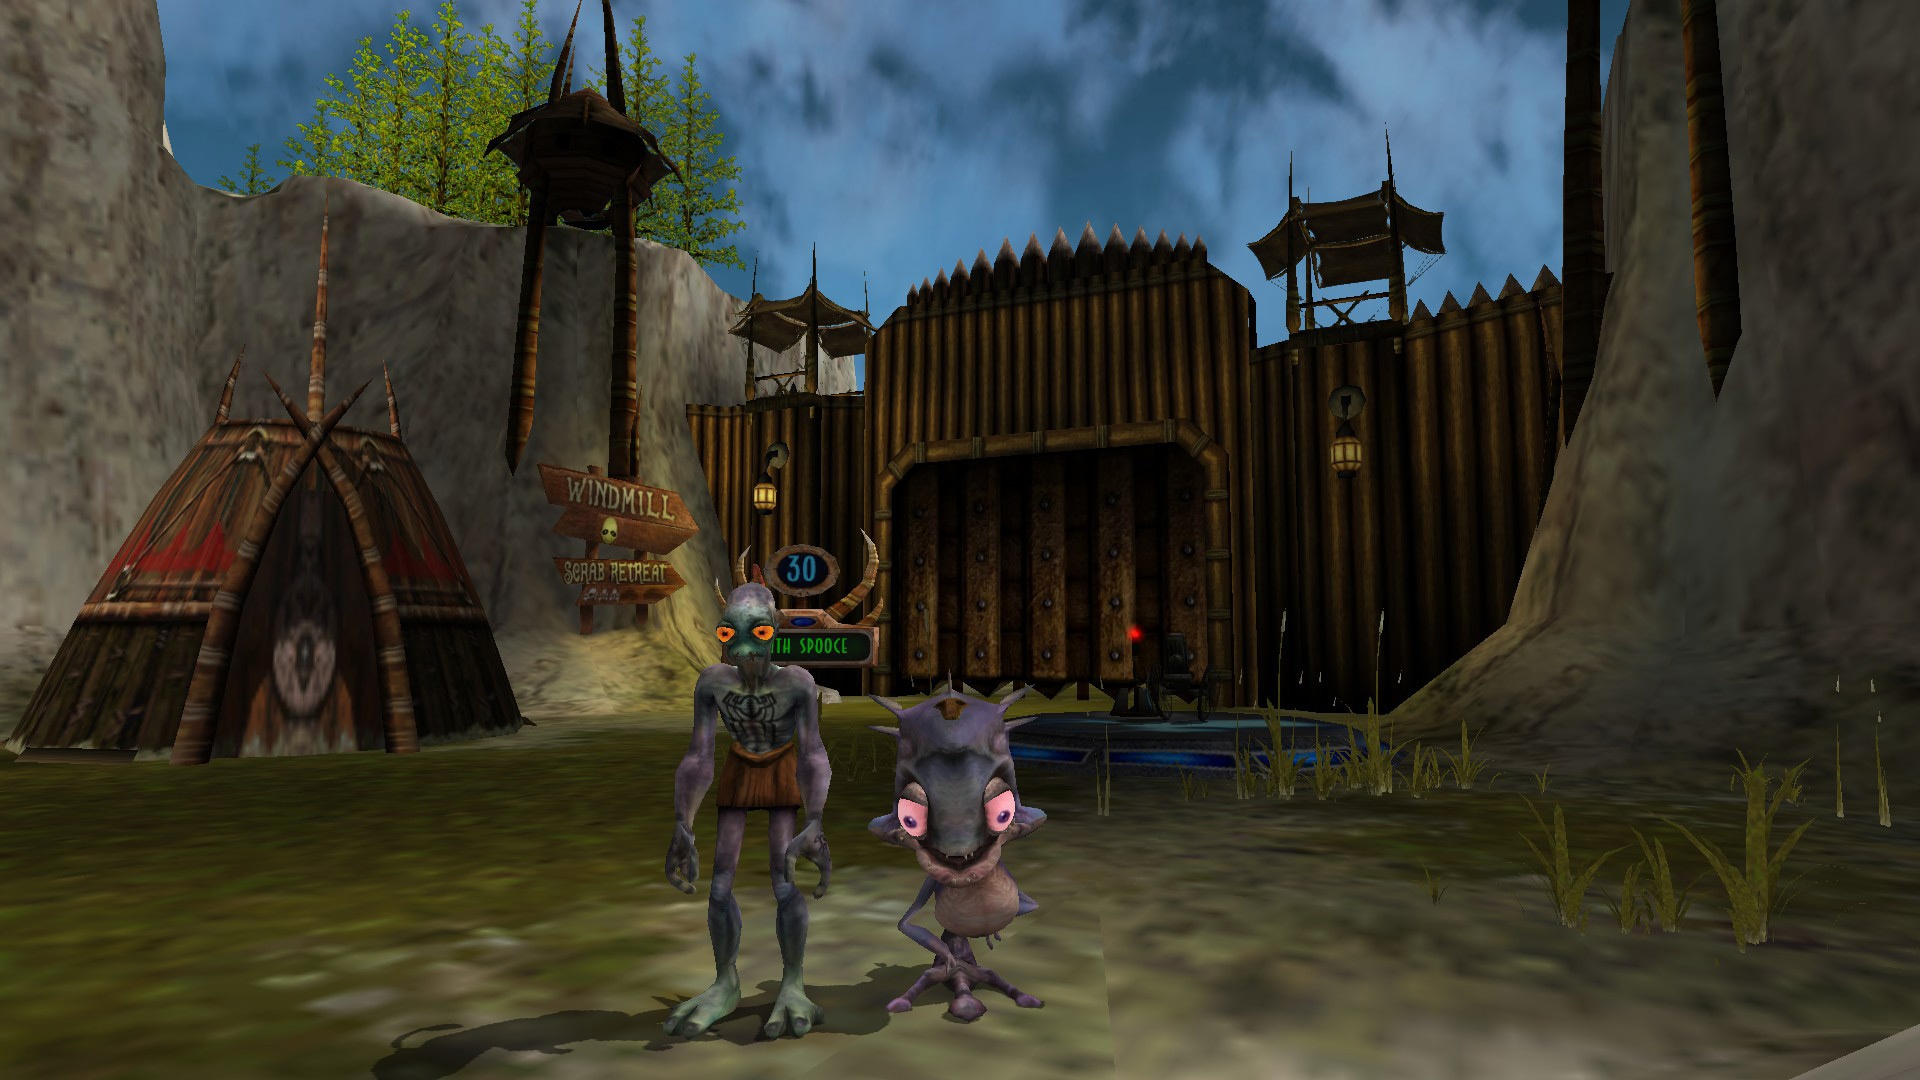 Oddworld: Munch's Oddysee - Learn How To Get Money